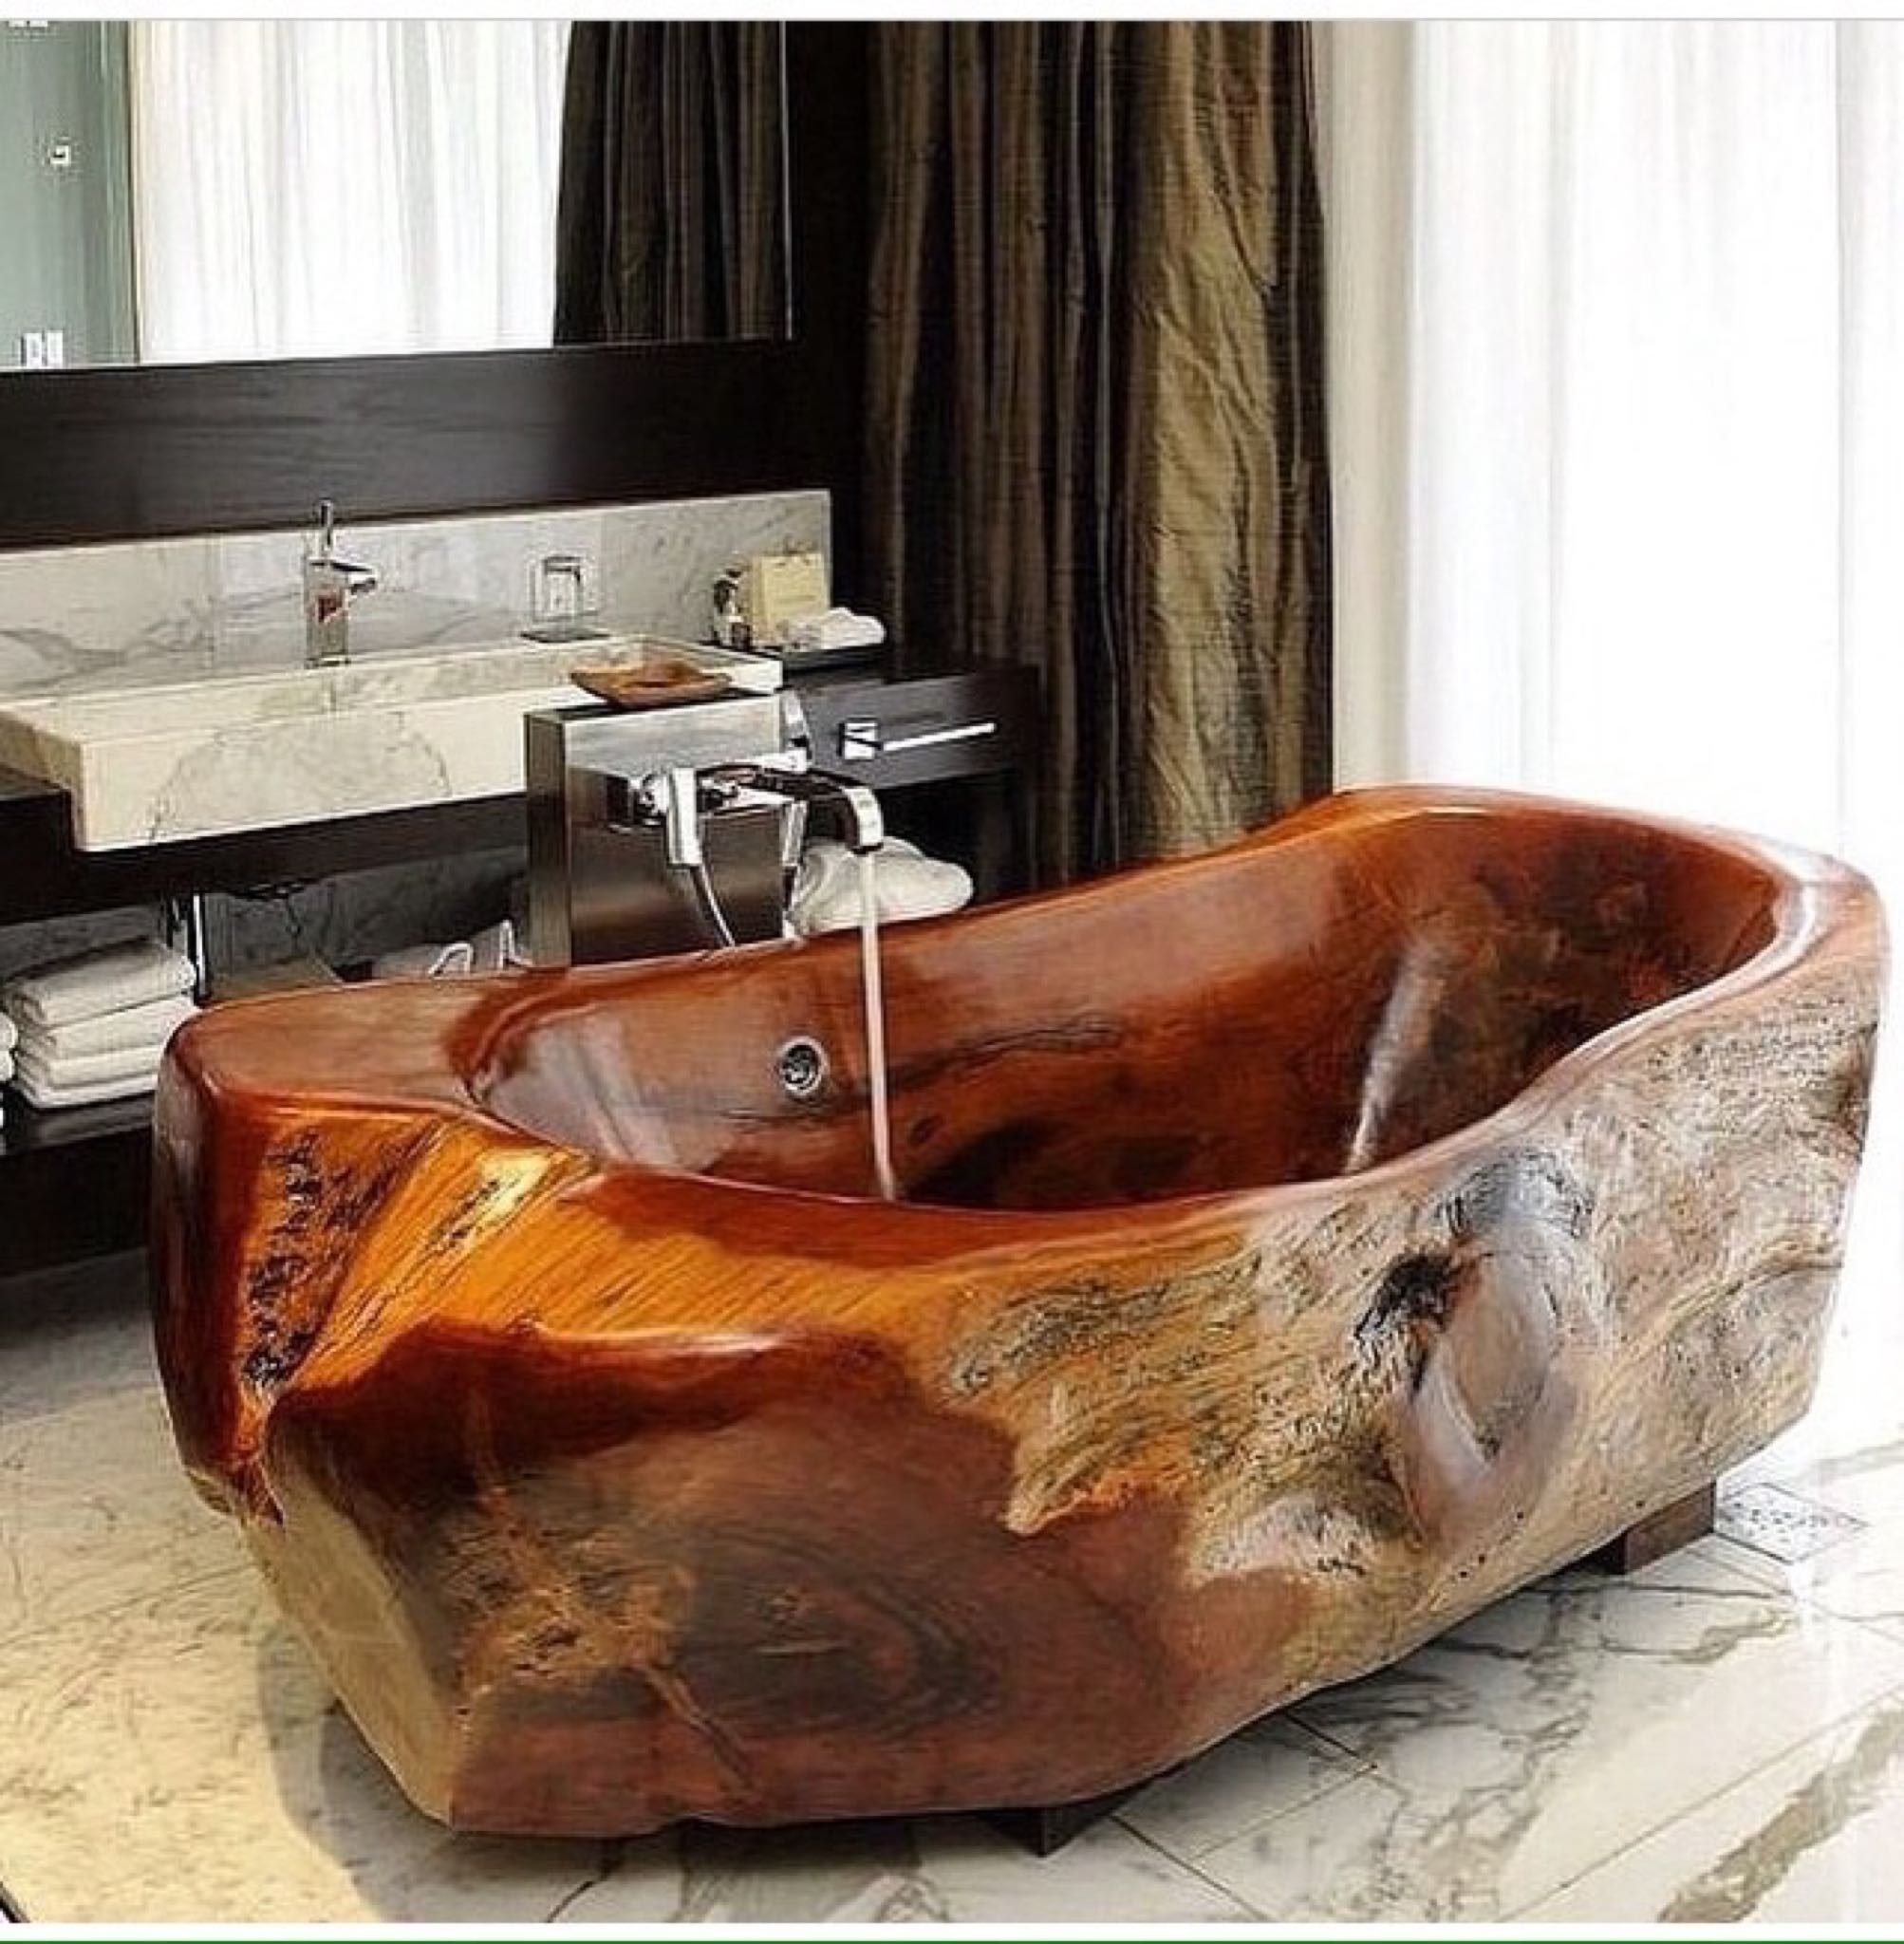 Amazing Bathrooms With Wooden Bathtub (14)